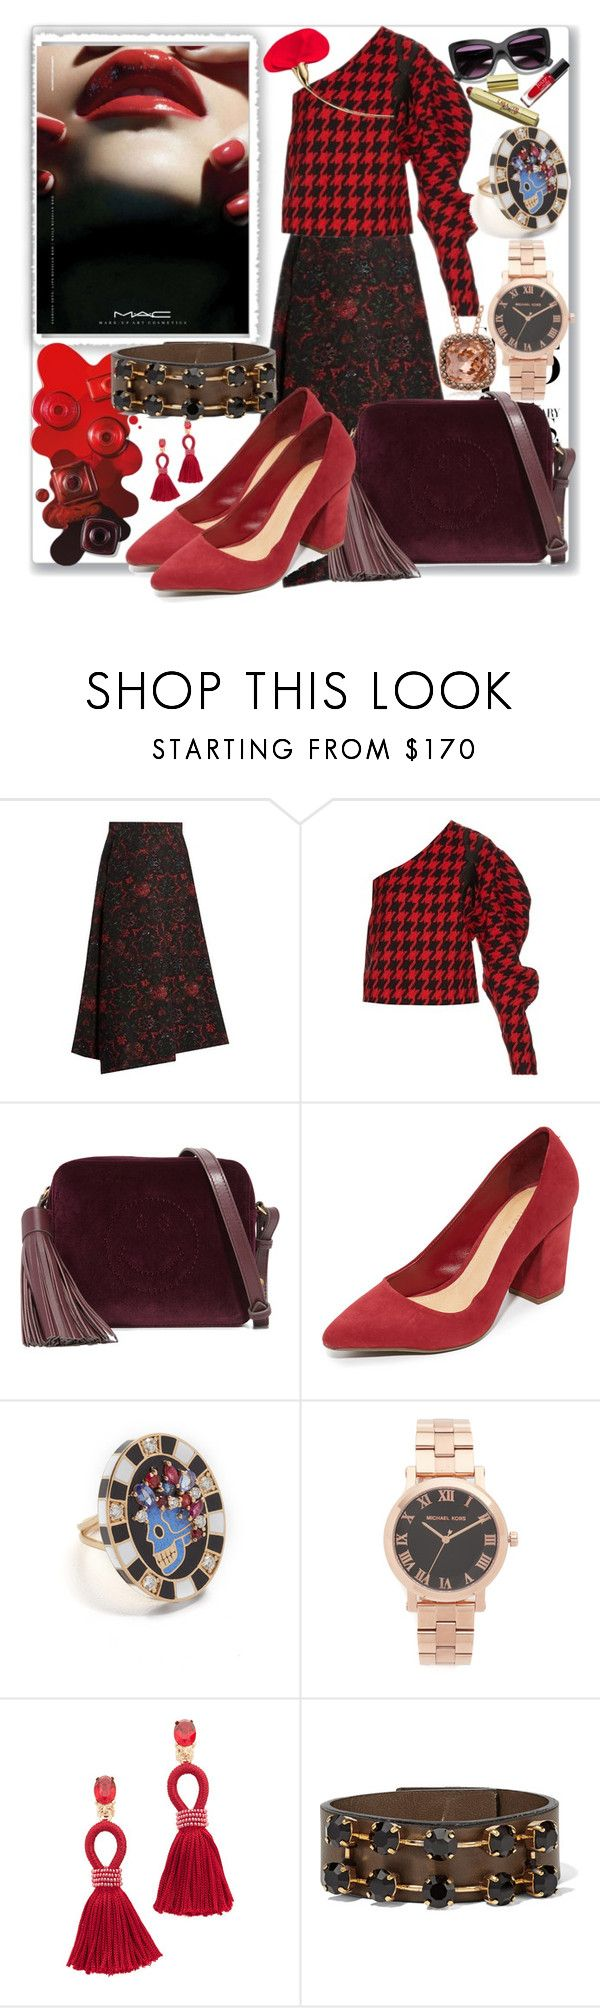 """""""Rock the Look Once More!!"""" by stylediva20 ❤ liked on Polyvore featuring Y's by Yohji Yamamoto, A.W.A.K.E., M.A.C, Anya Hindmarch, Schutz, Holly Dyment, Michael Kors, Oscar de la Renta, Dolce&Gabbana and Marni"""